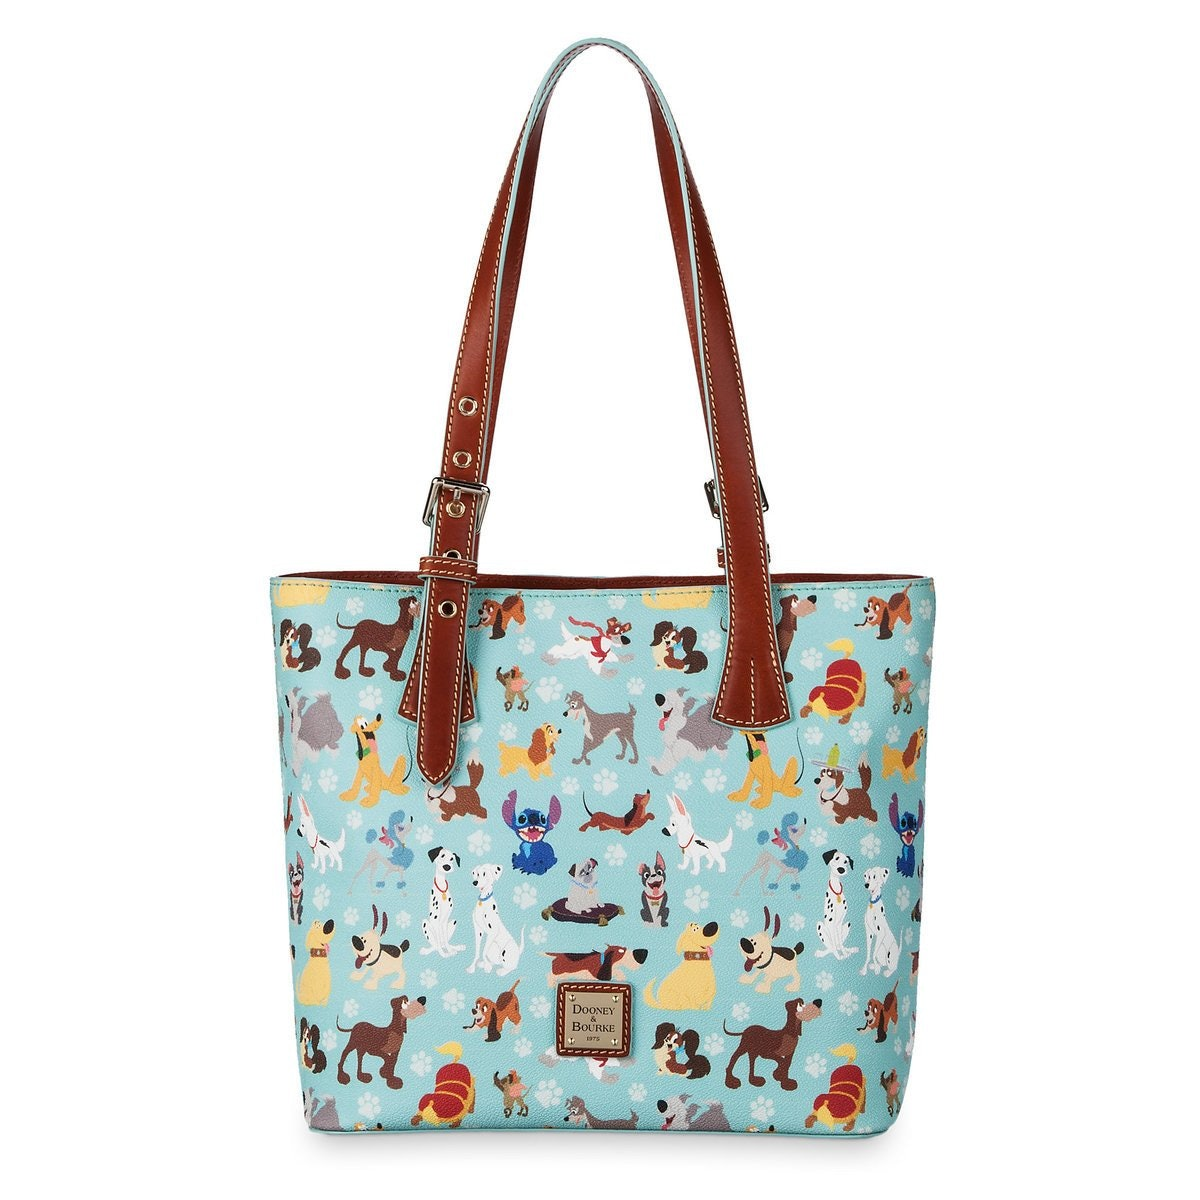 Dooney Bourke S Disney Dogs Collection Is A Tribute To Your Favorite Cartoon Pups